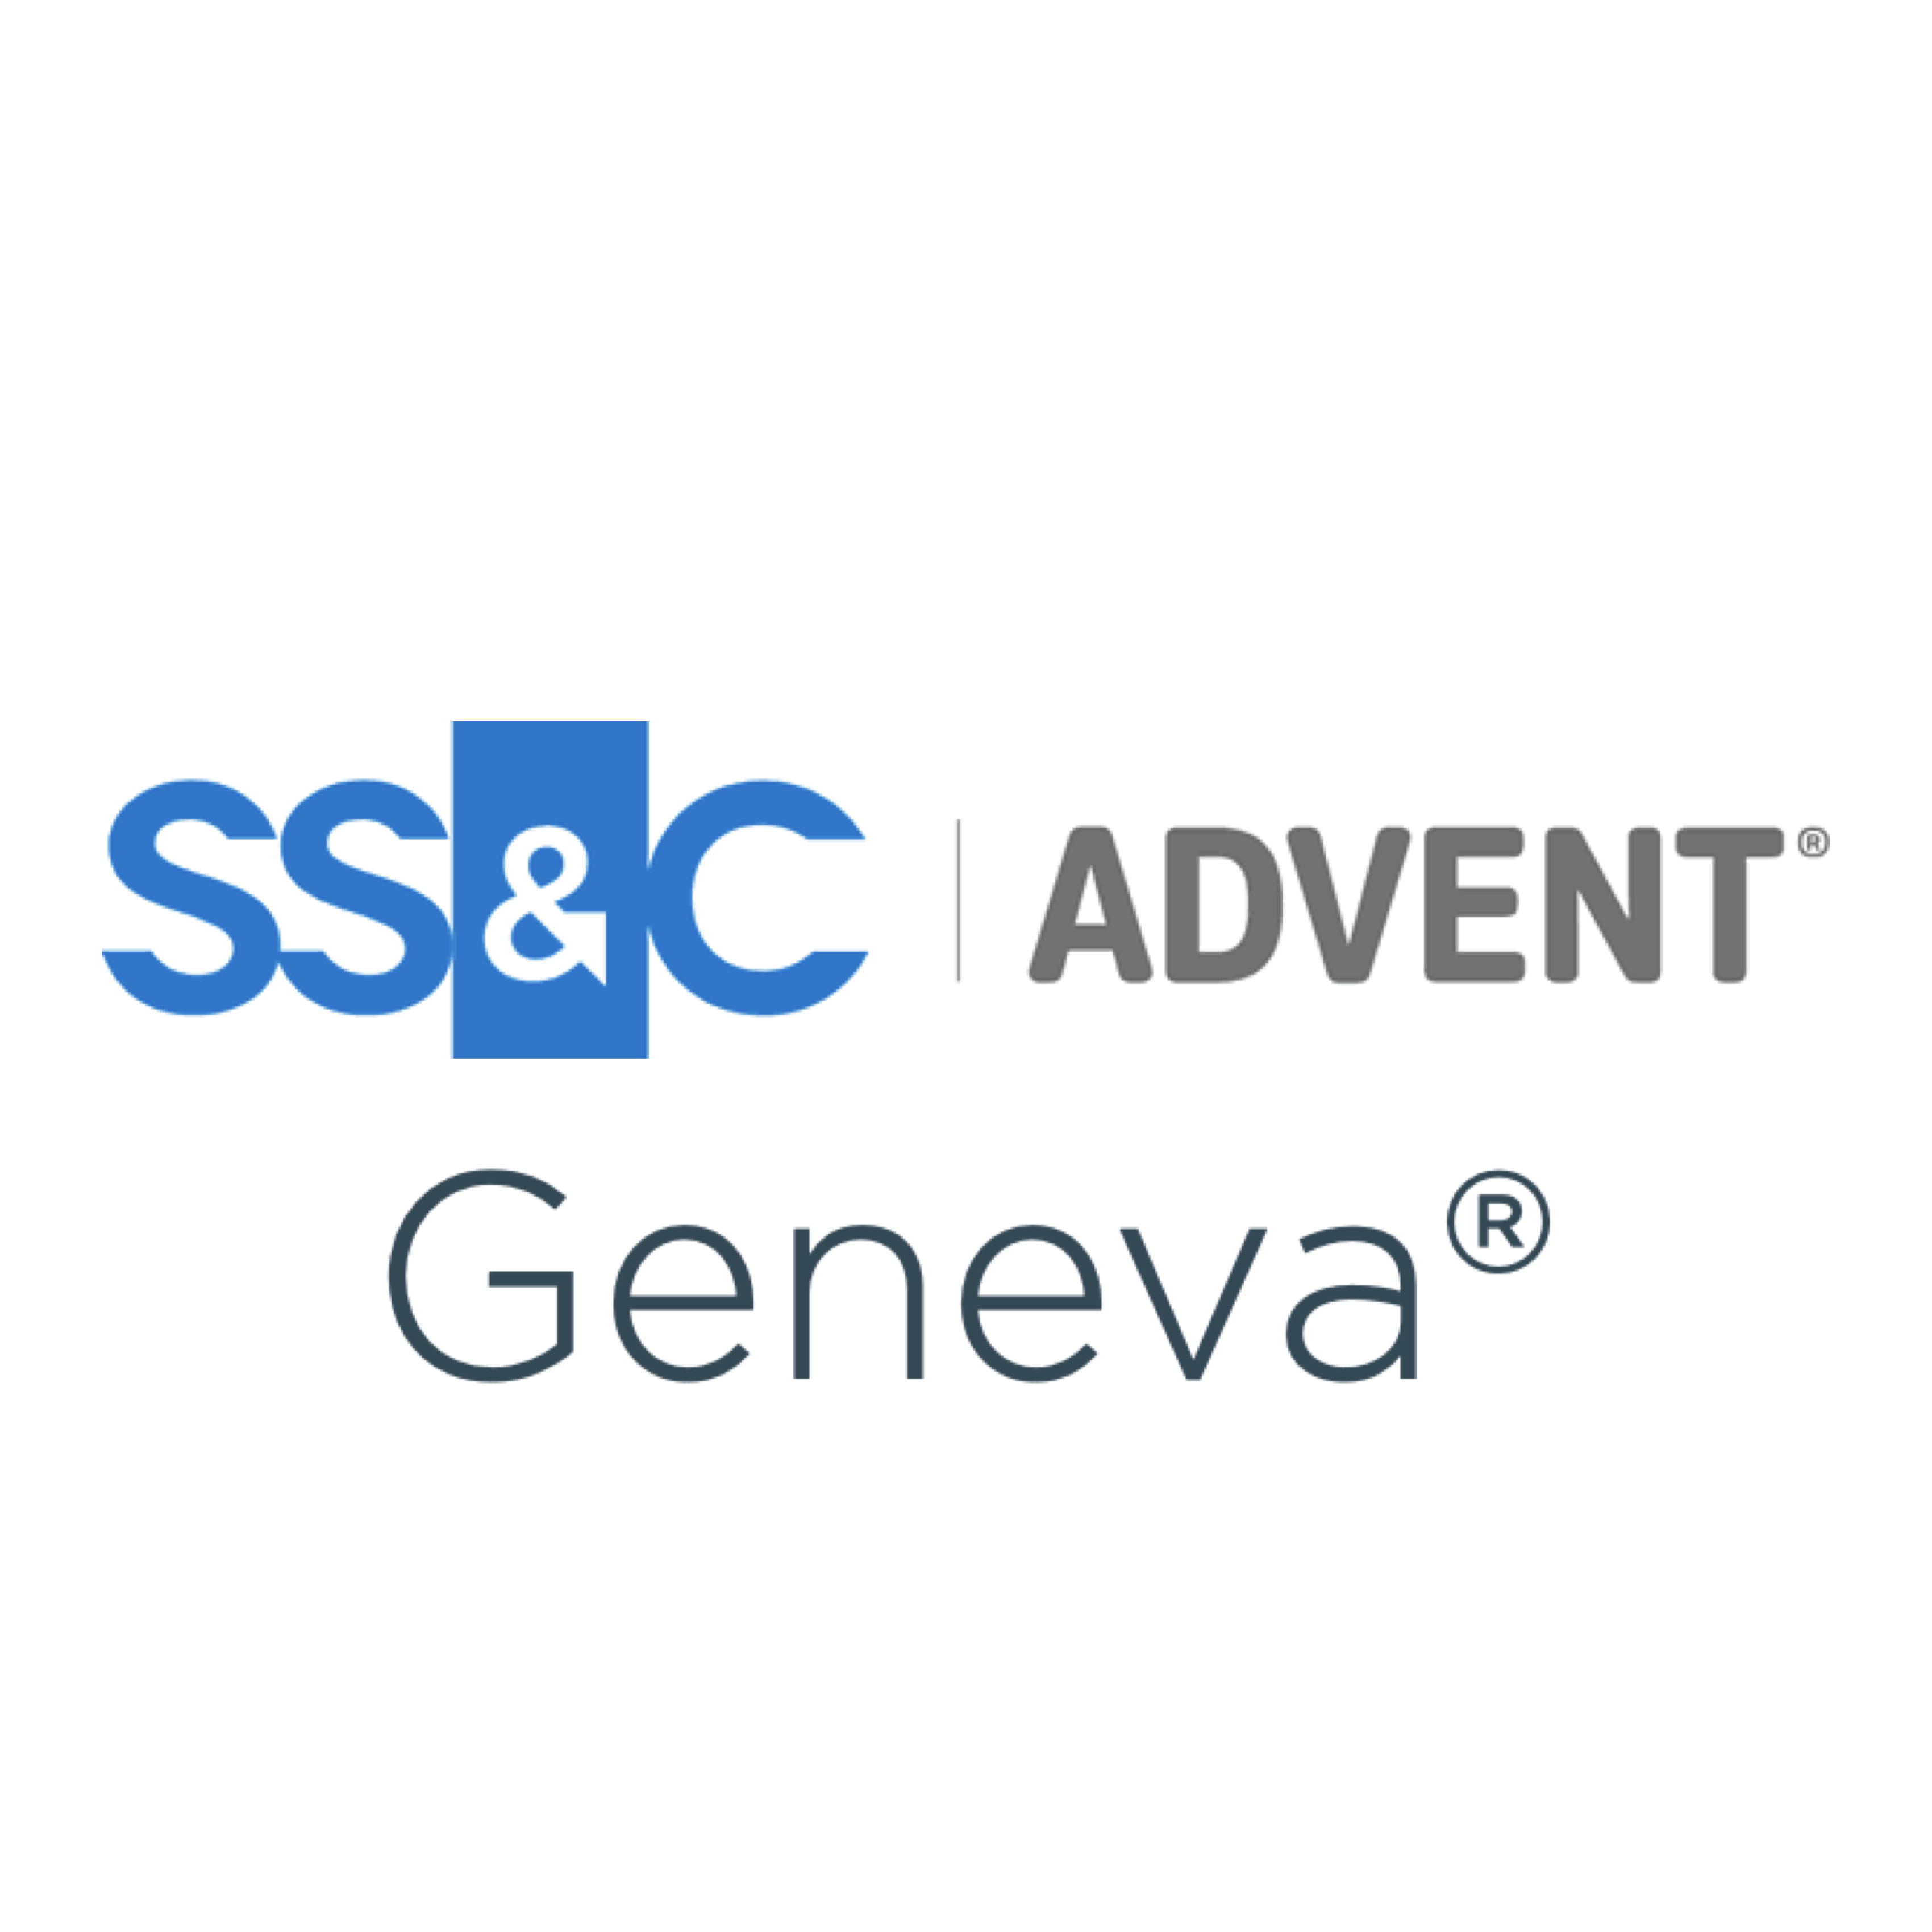 SS&C Advent Geneva